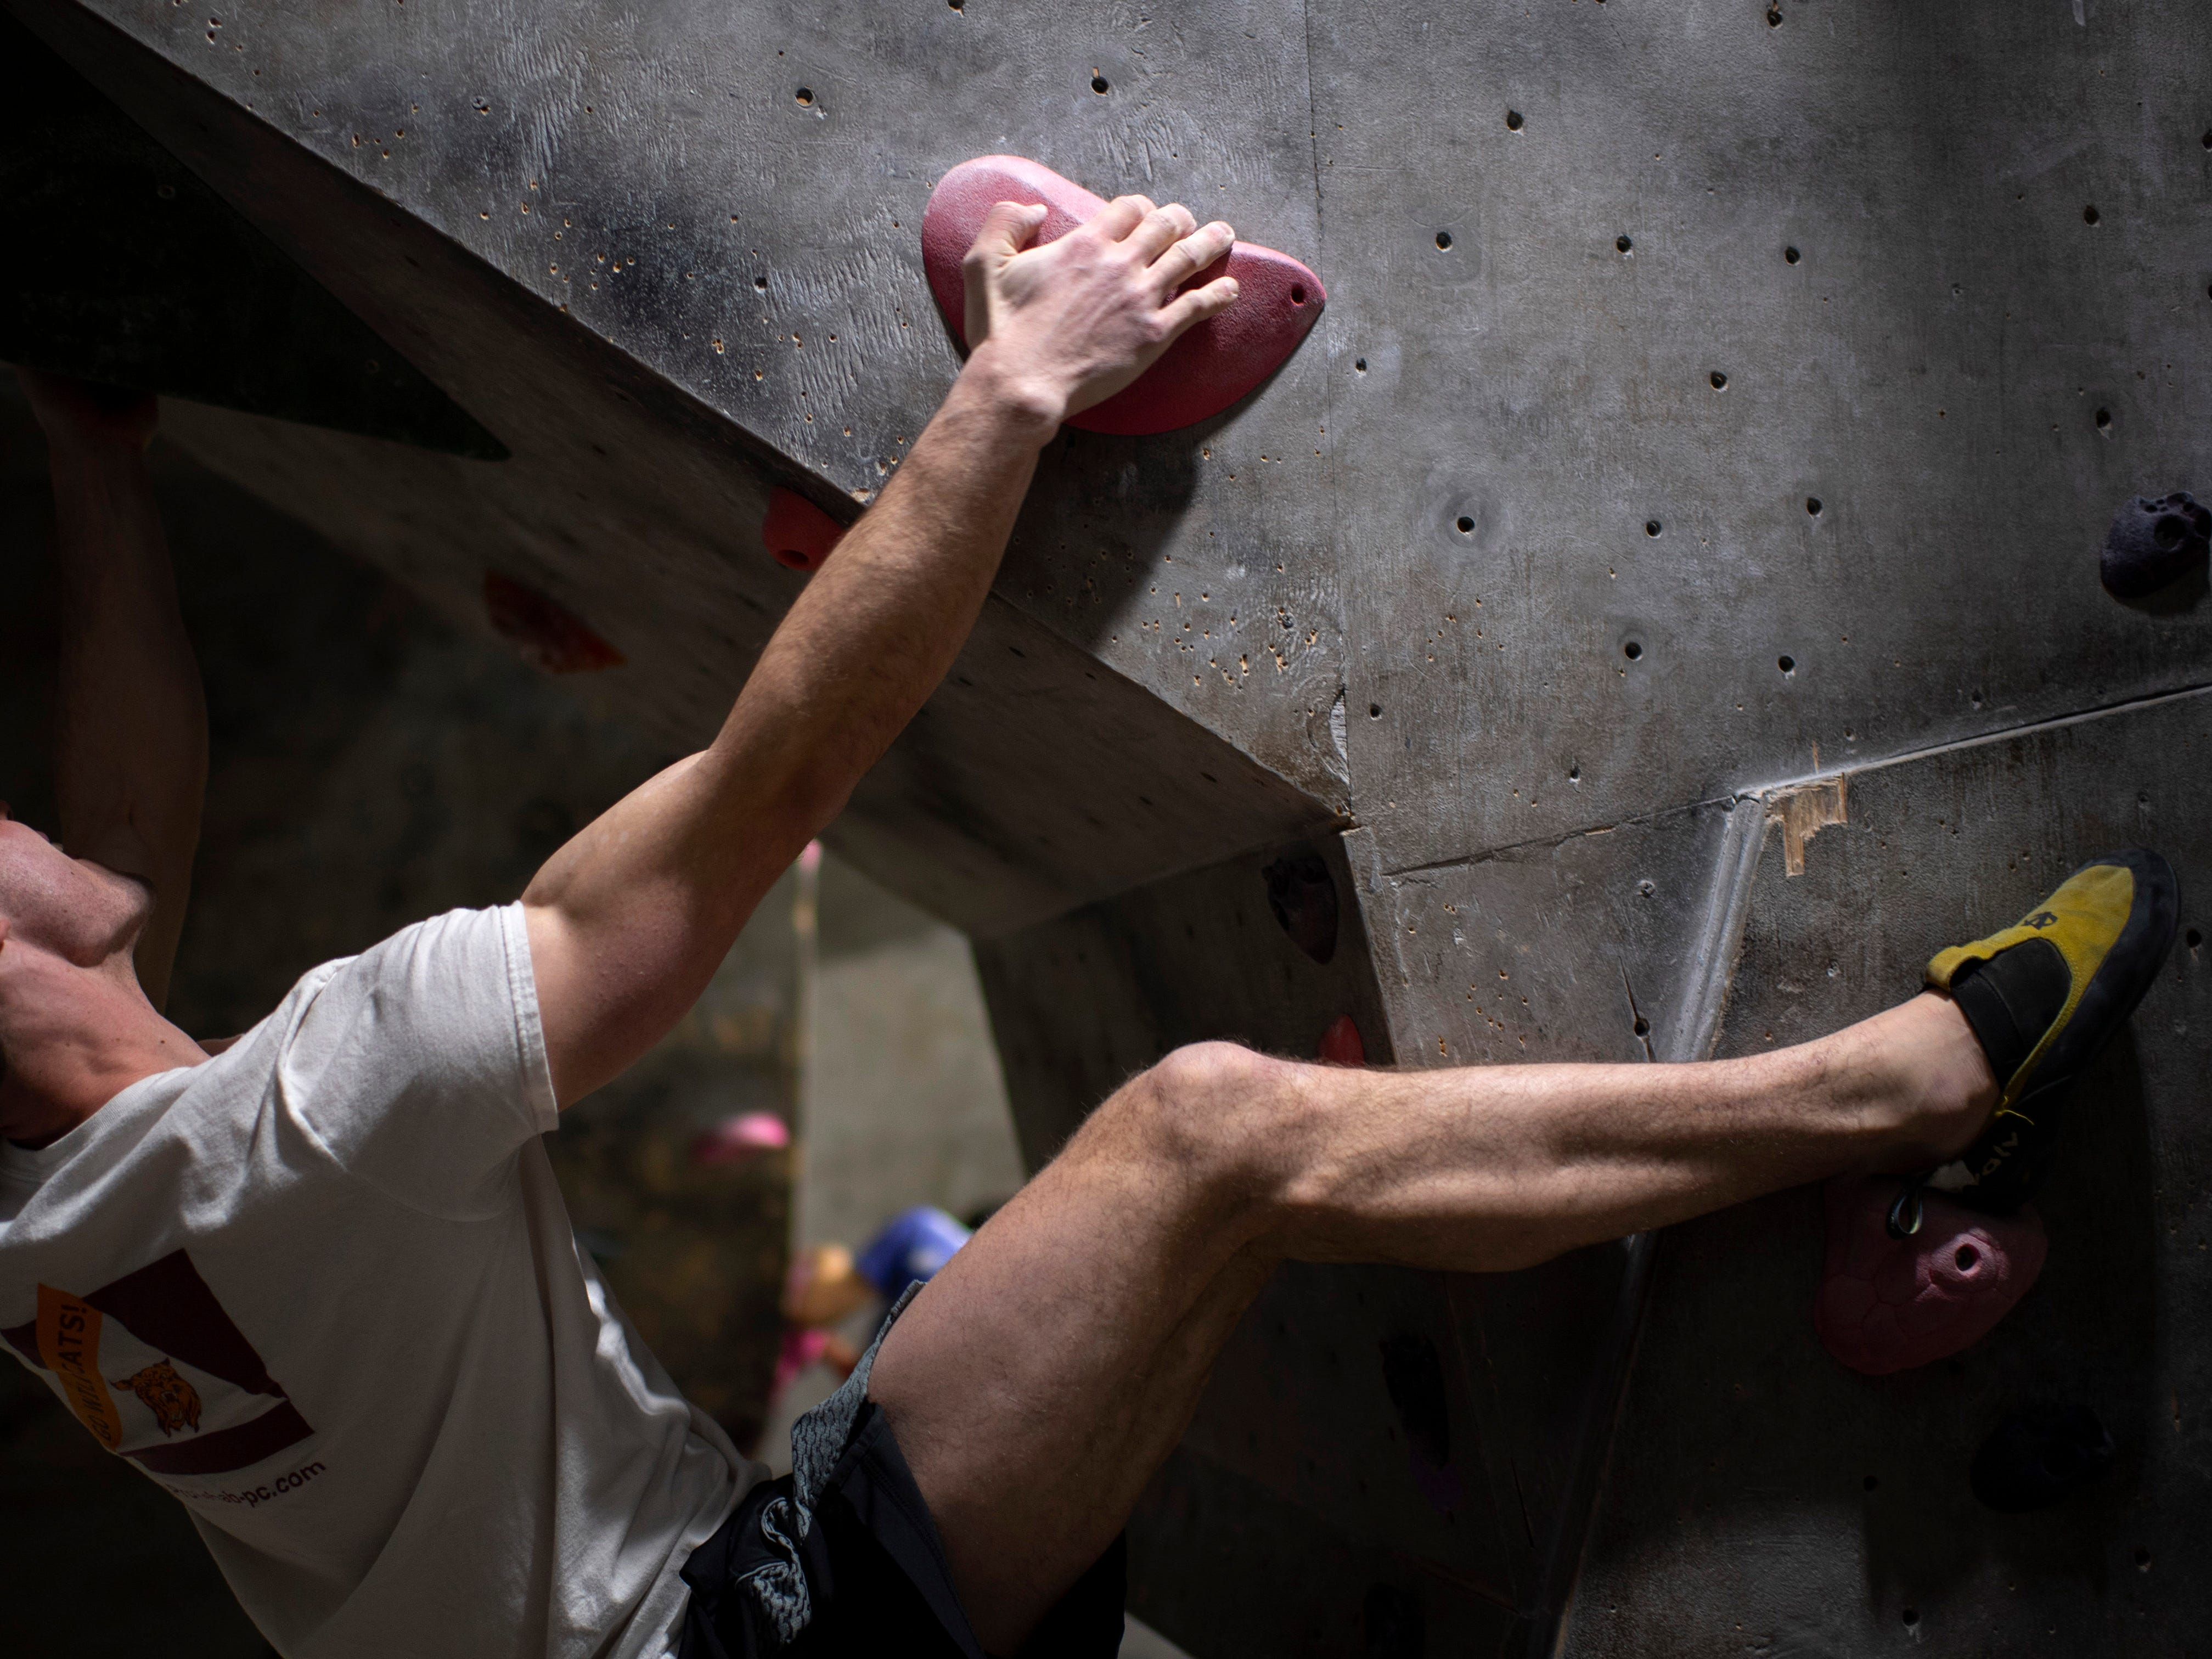 Leo Scheller climbs through a challenging bouldering obstacle at Vertical eXcape at 1315 N. Royal Avenue in Evansville Friday evening.